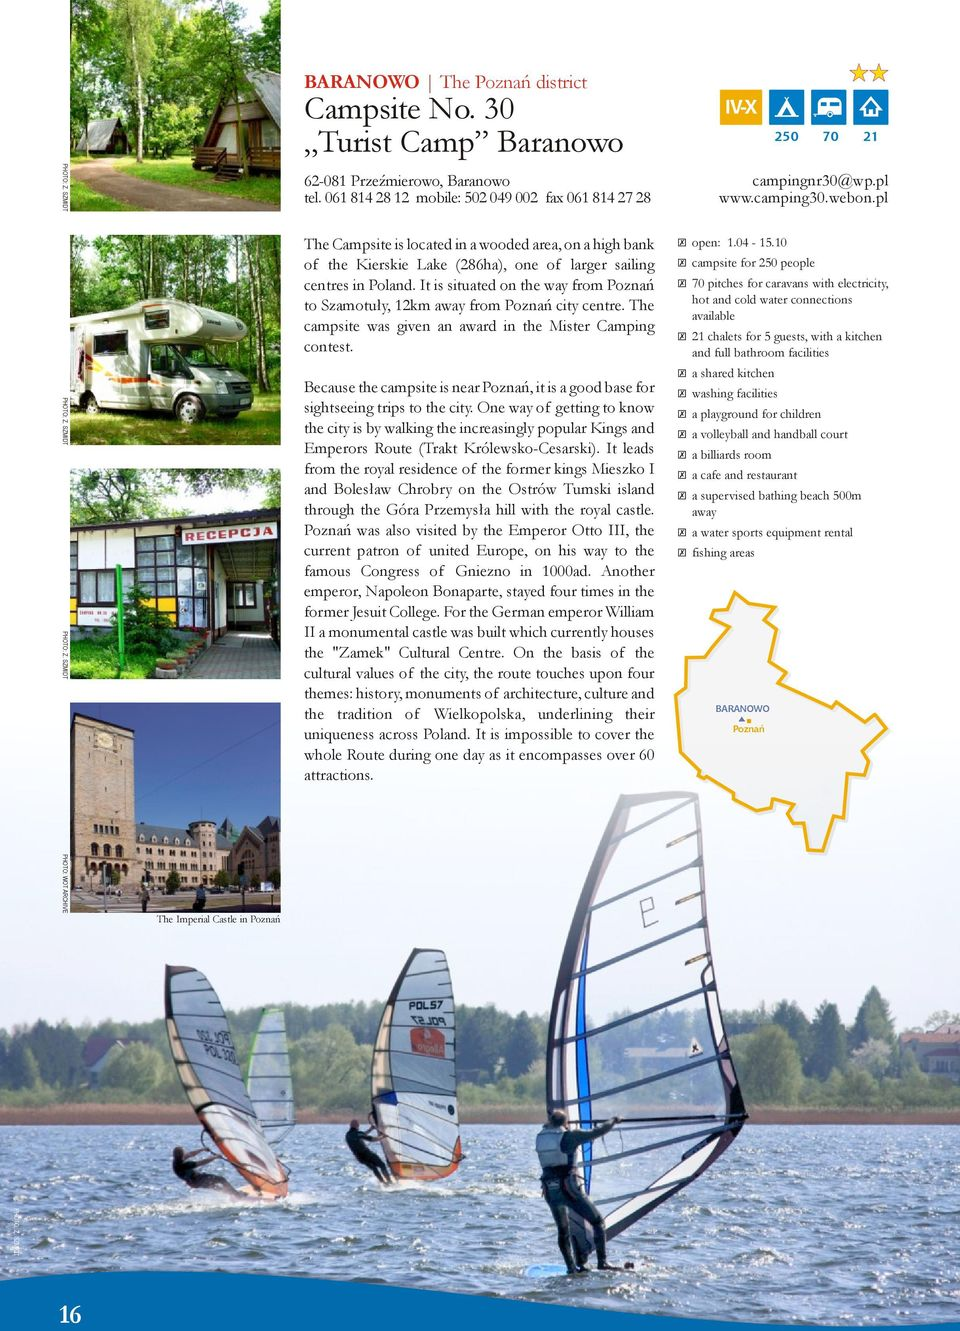 It is situated on the way from to Szamotuły, 12km away from city centre. The campsite was given an award in the Mister Camping contest.